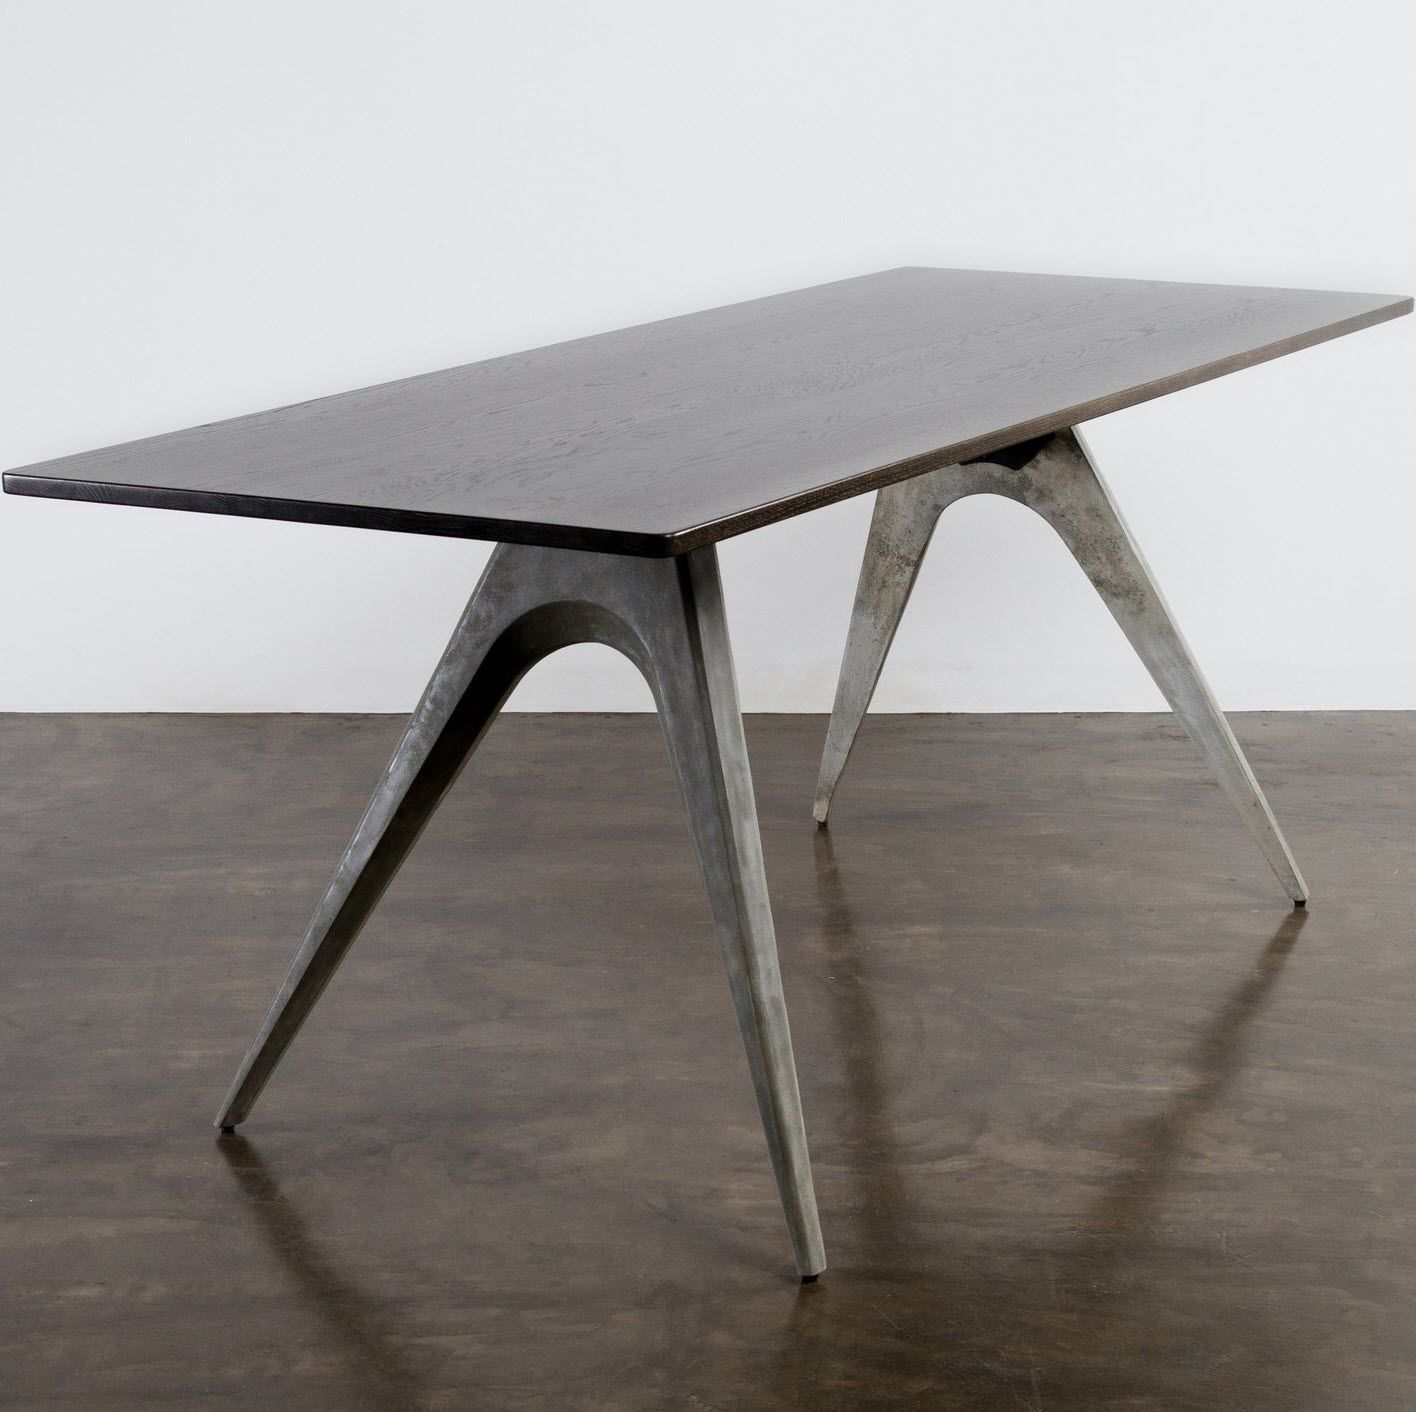 Contemporary Dining Table Metal Concrete Rectangular KAHN - Concrete and metal dining table